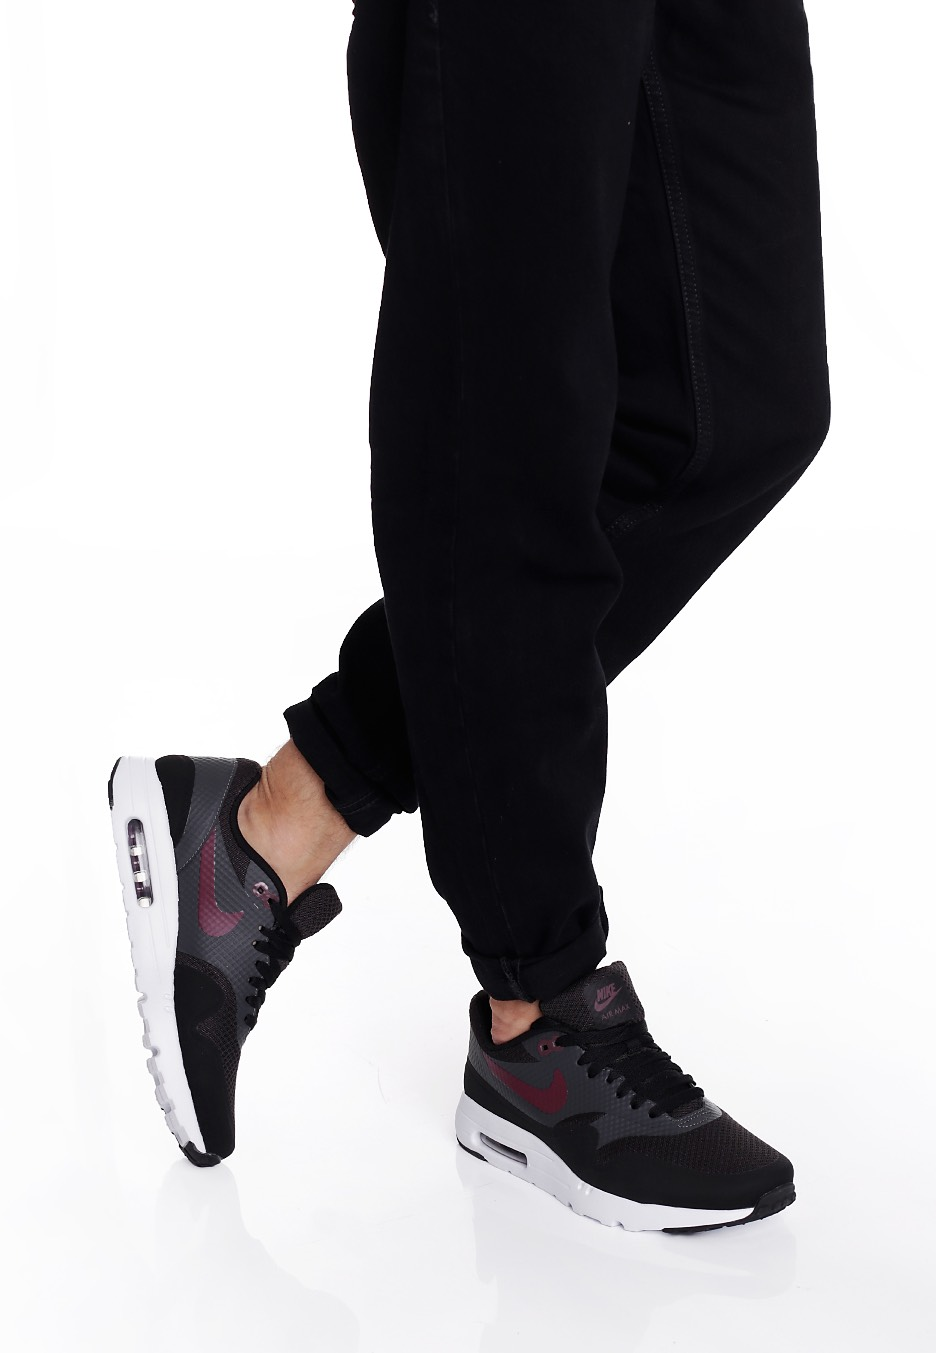 quality design f4438 8f929 ... shop nike air max 1 ultra essential black night maroon anthracite white  07688 f501c